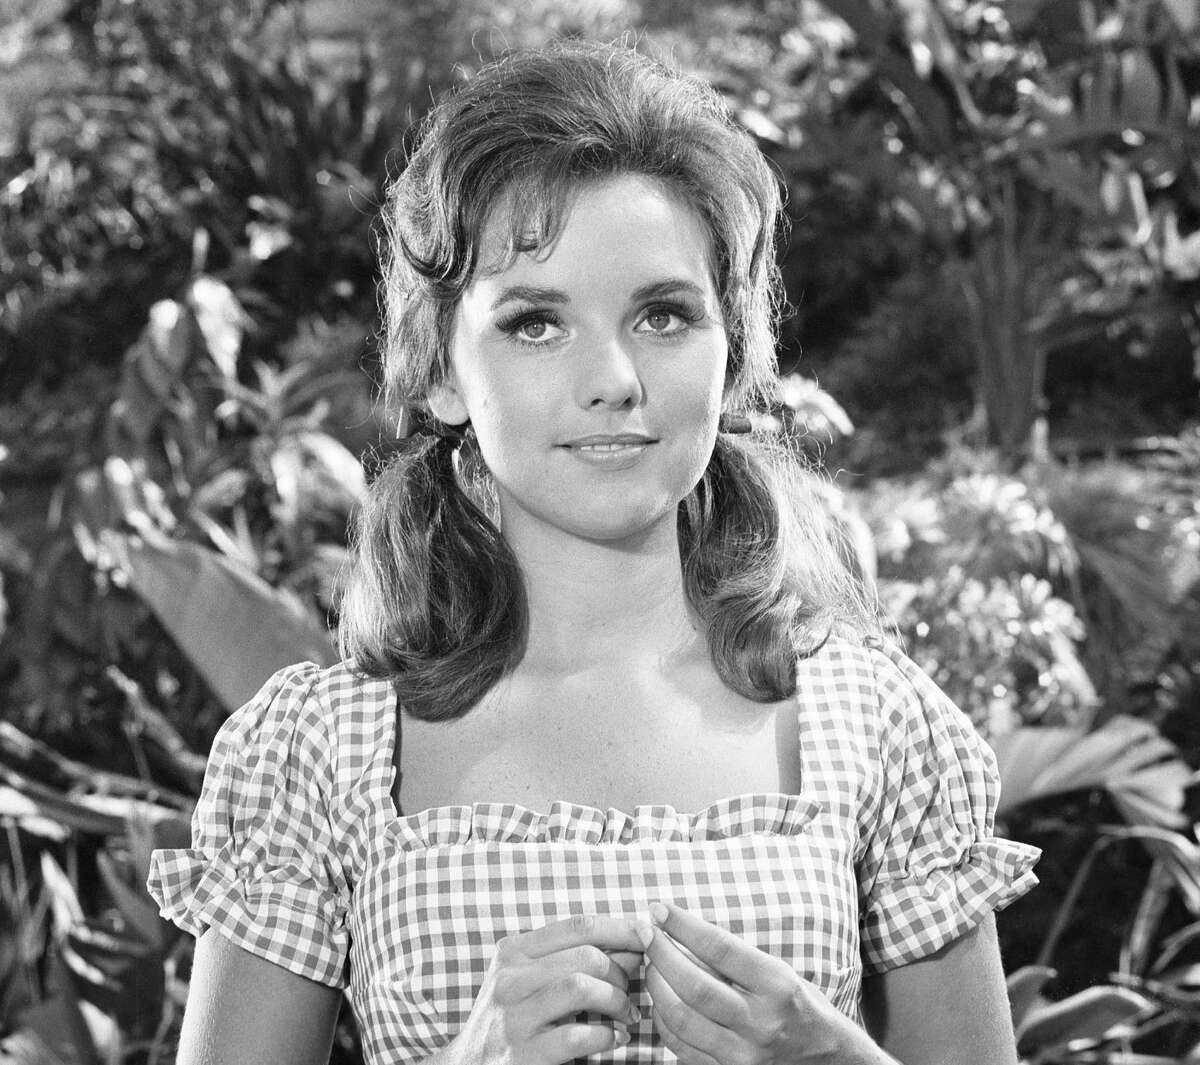 Known for her role as Mary Ann Summers on the classic sitcom